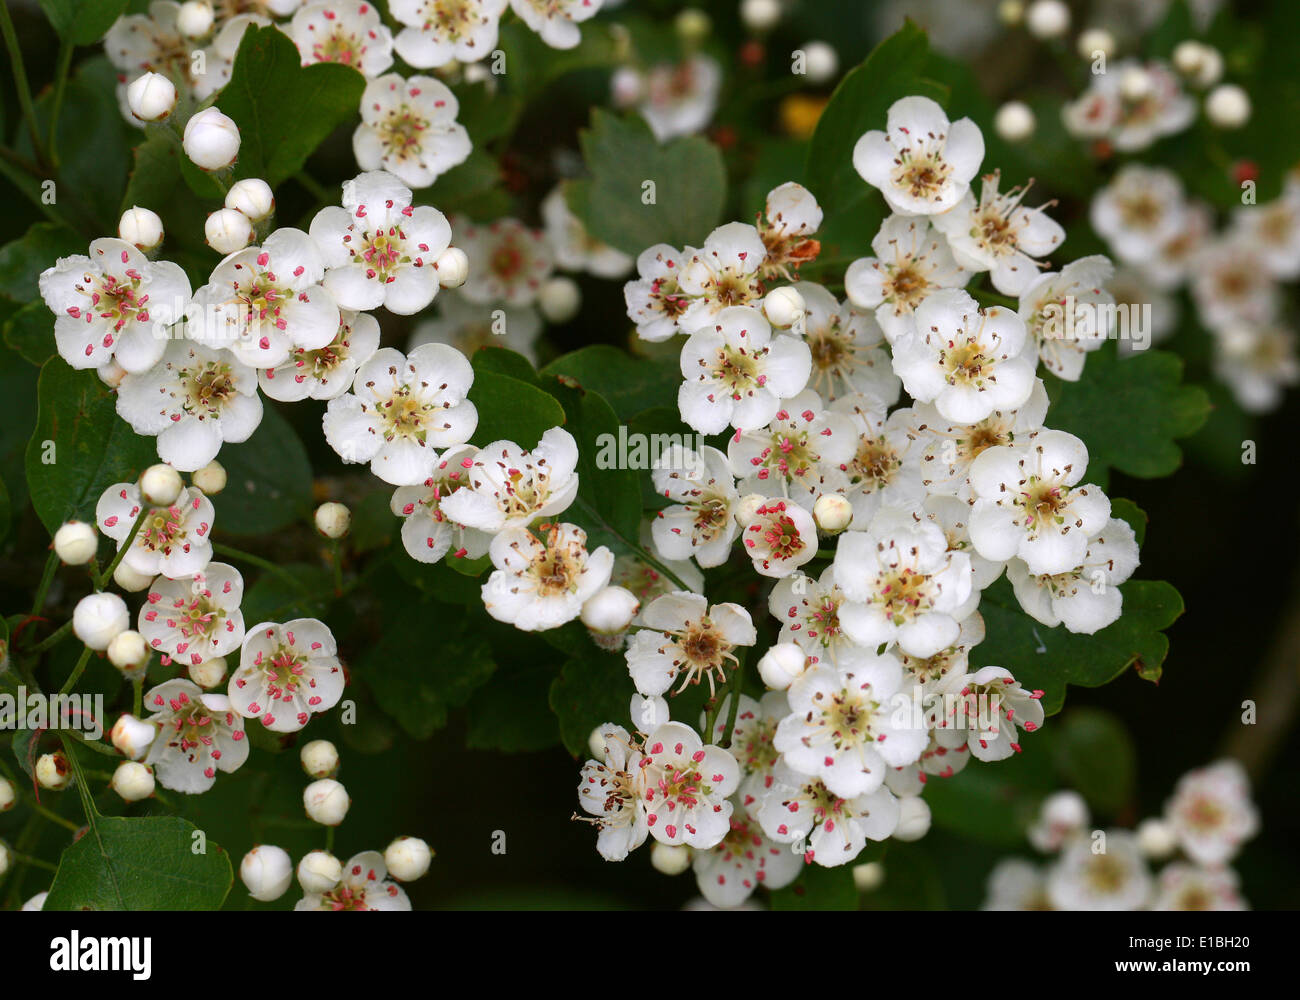 Common Hawthorn Tree in Flower, Crataegus monogyna, Rosaceae Stock Photo